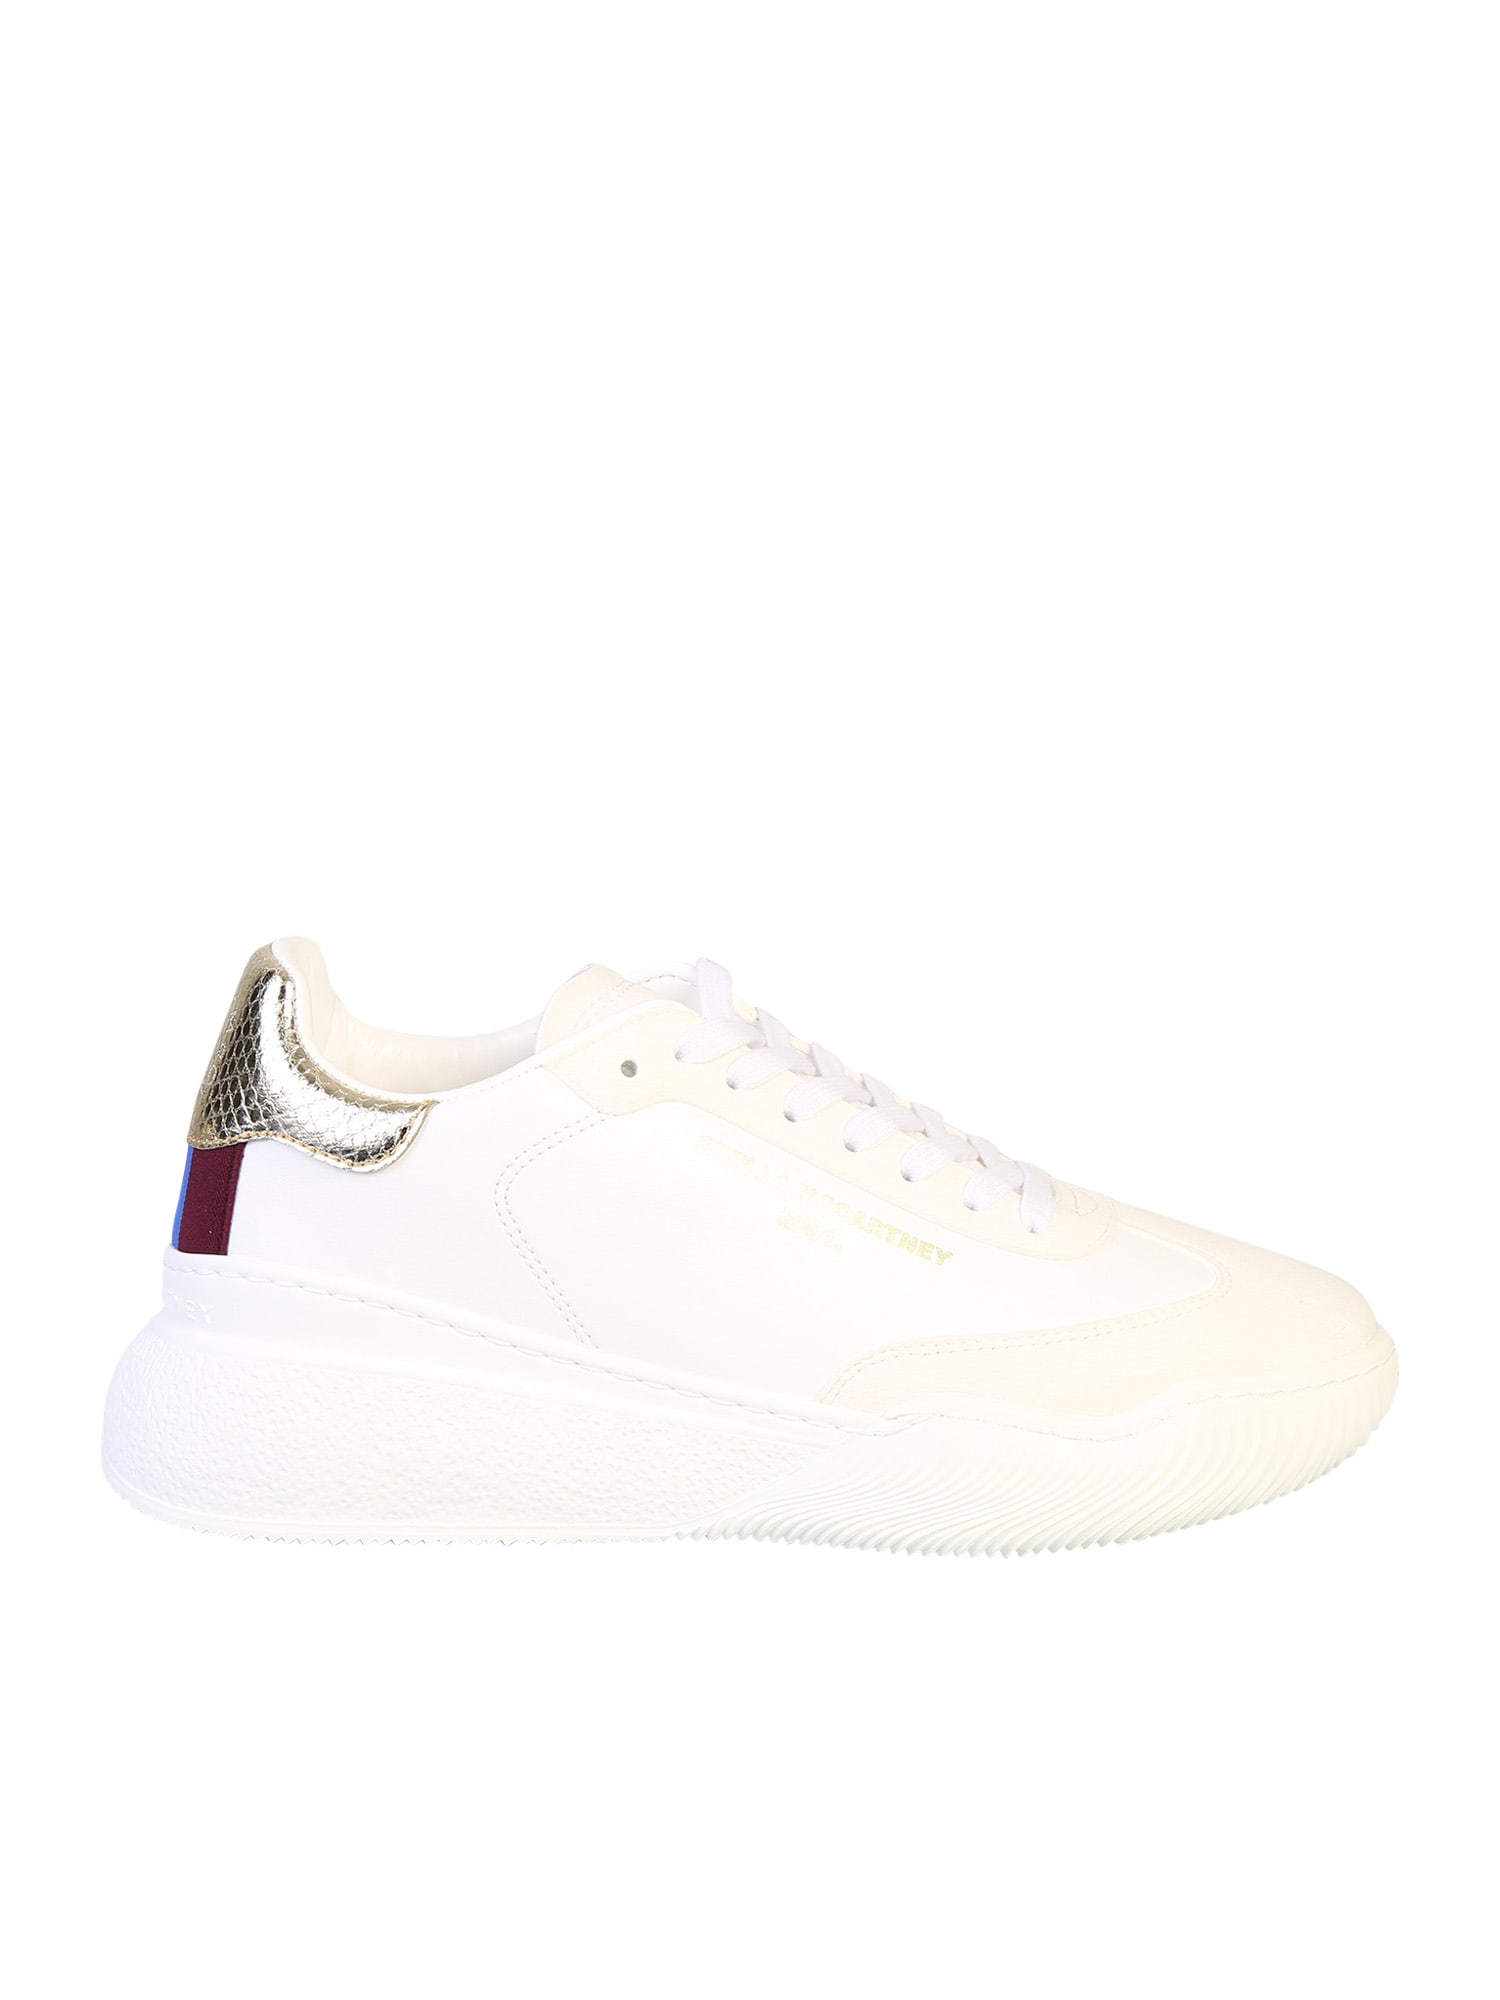 Stella Mccartney Sneakers BRANDED SNEAKERS